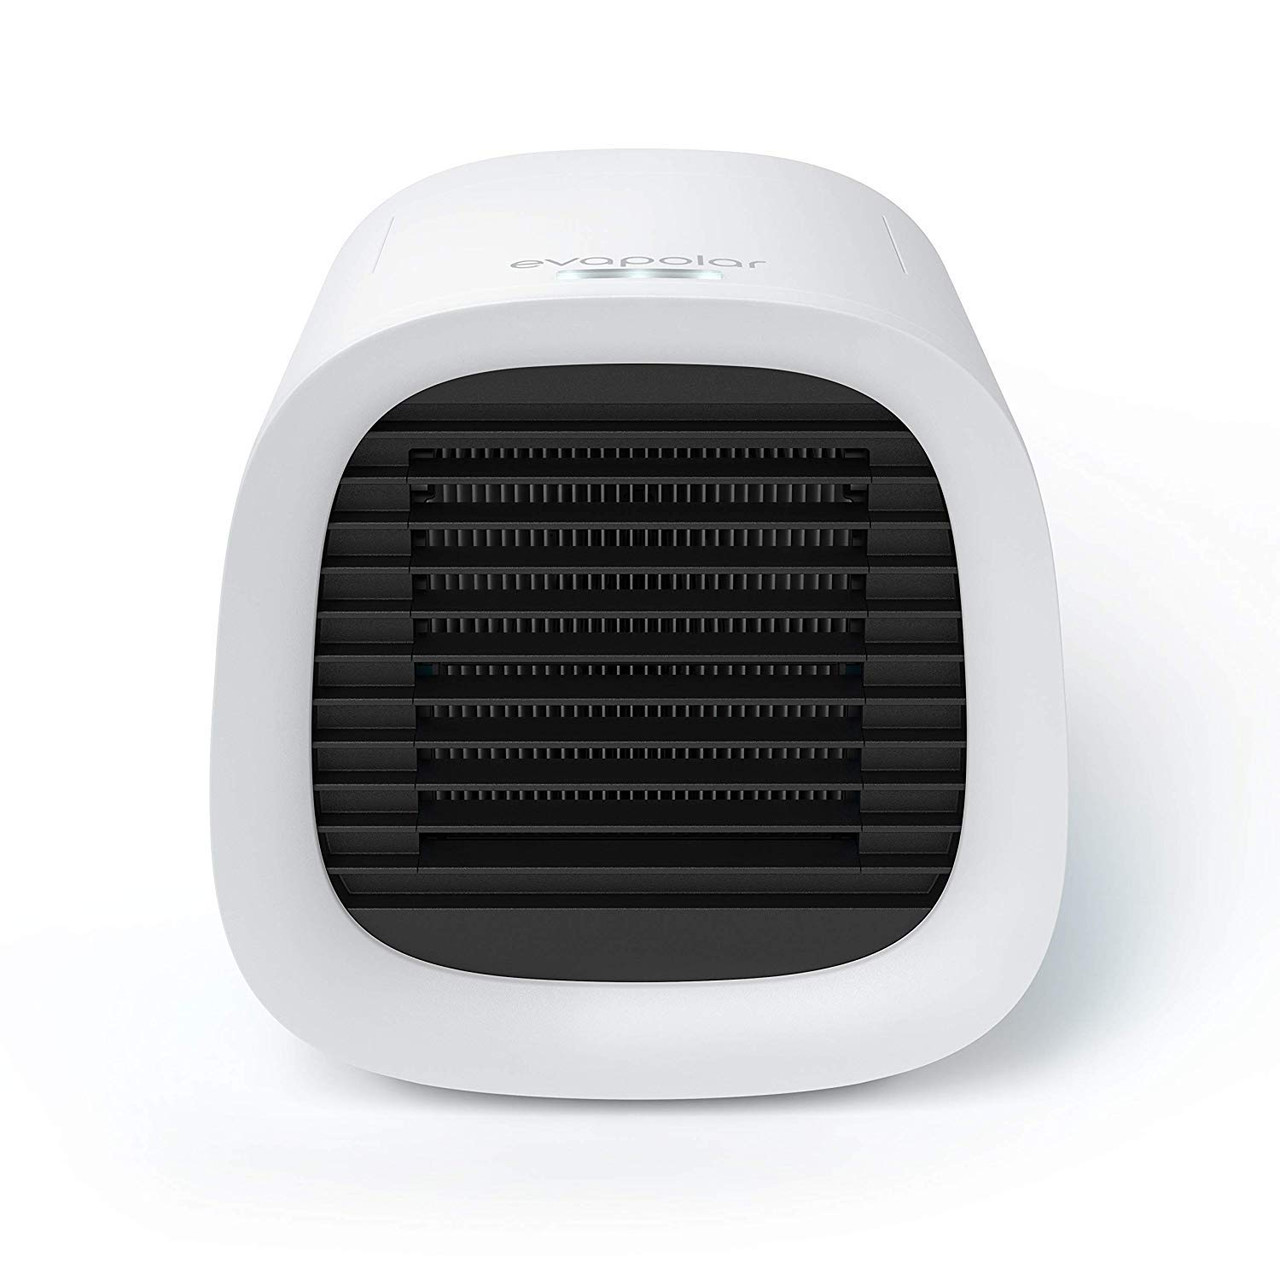 Evapolar EV-500W evaCHILL Evaporative Air Cooler and Humidifier Portable Air Conditioner Fan- White